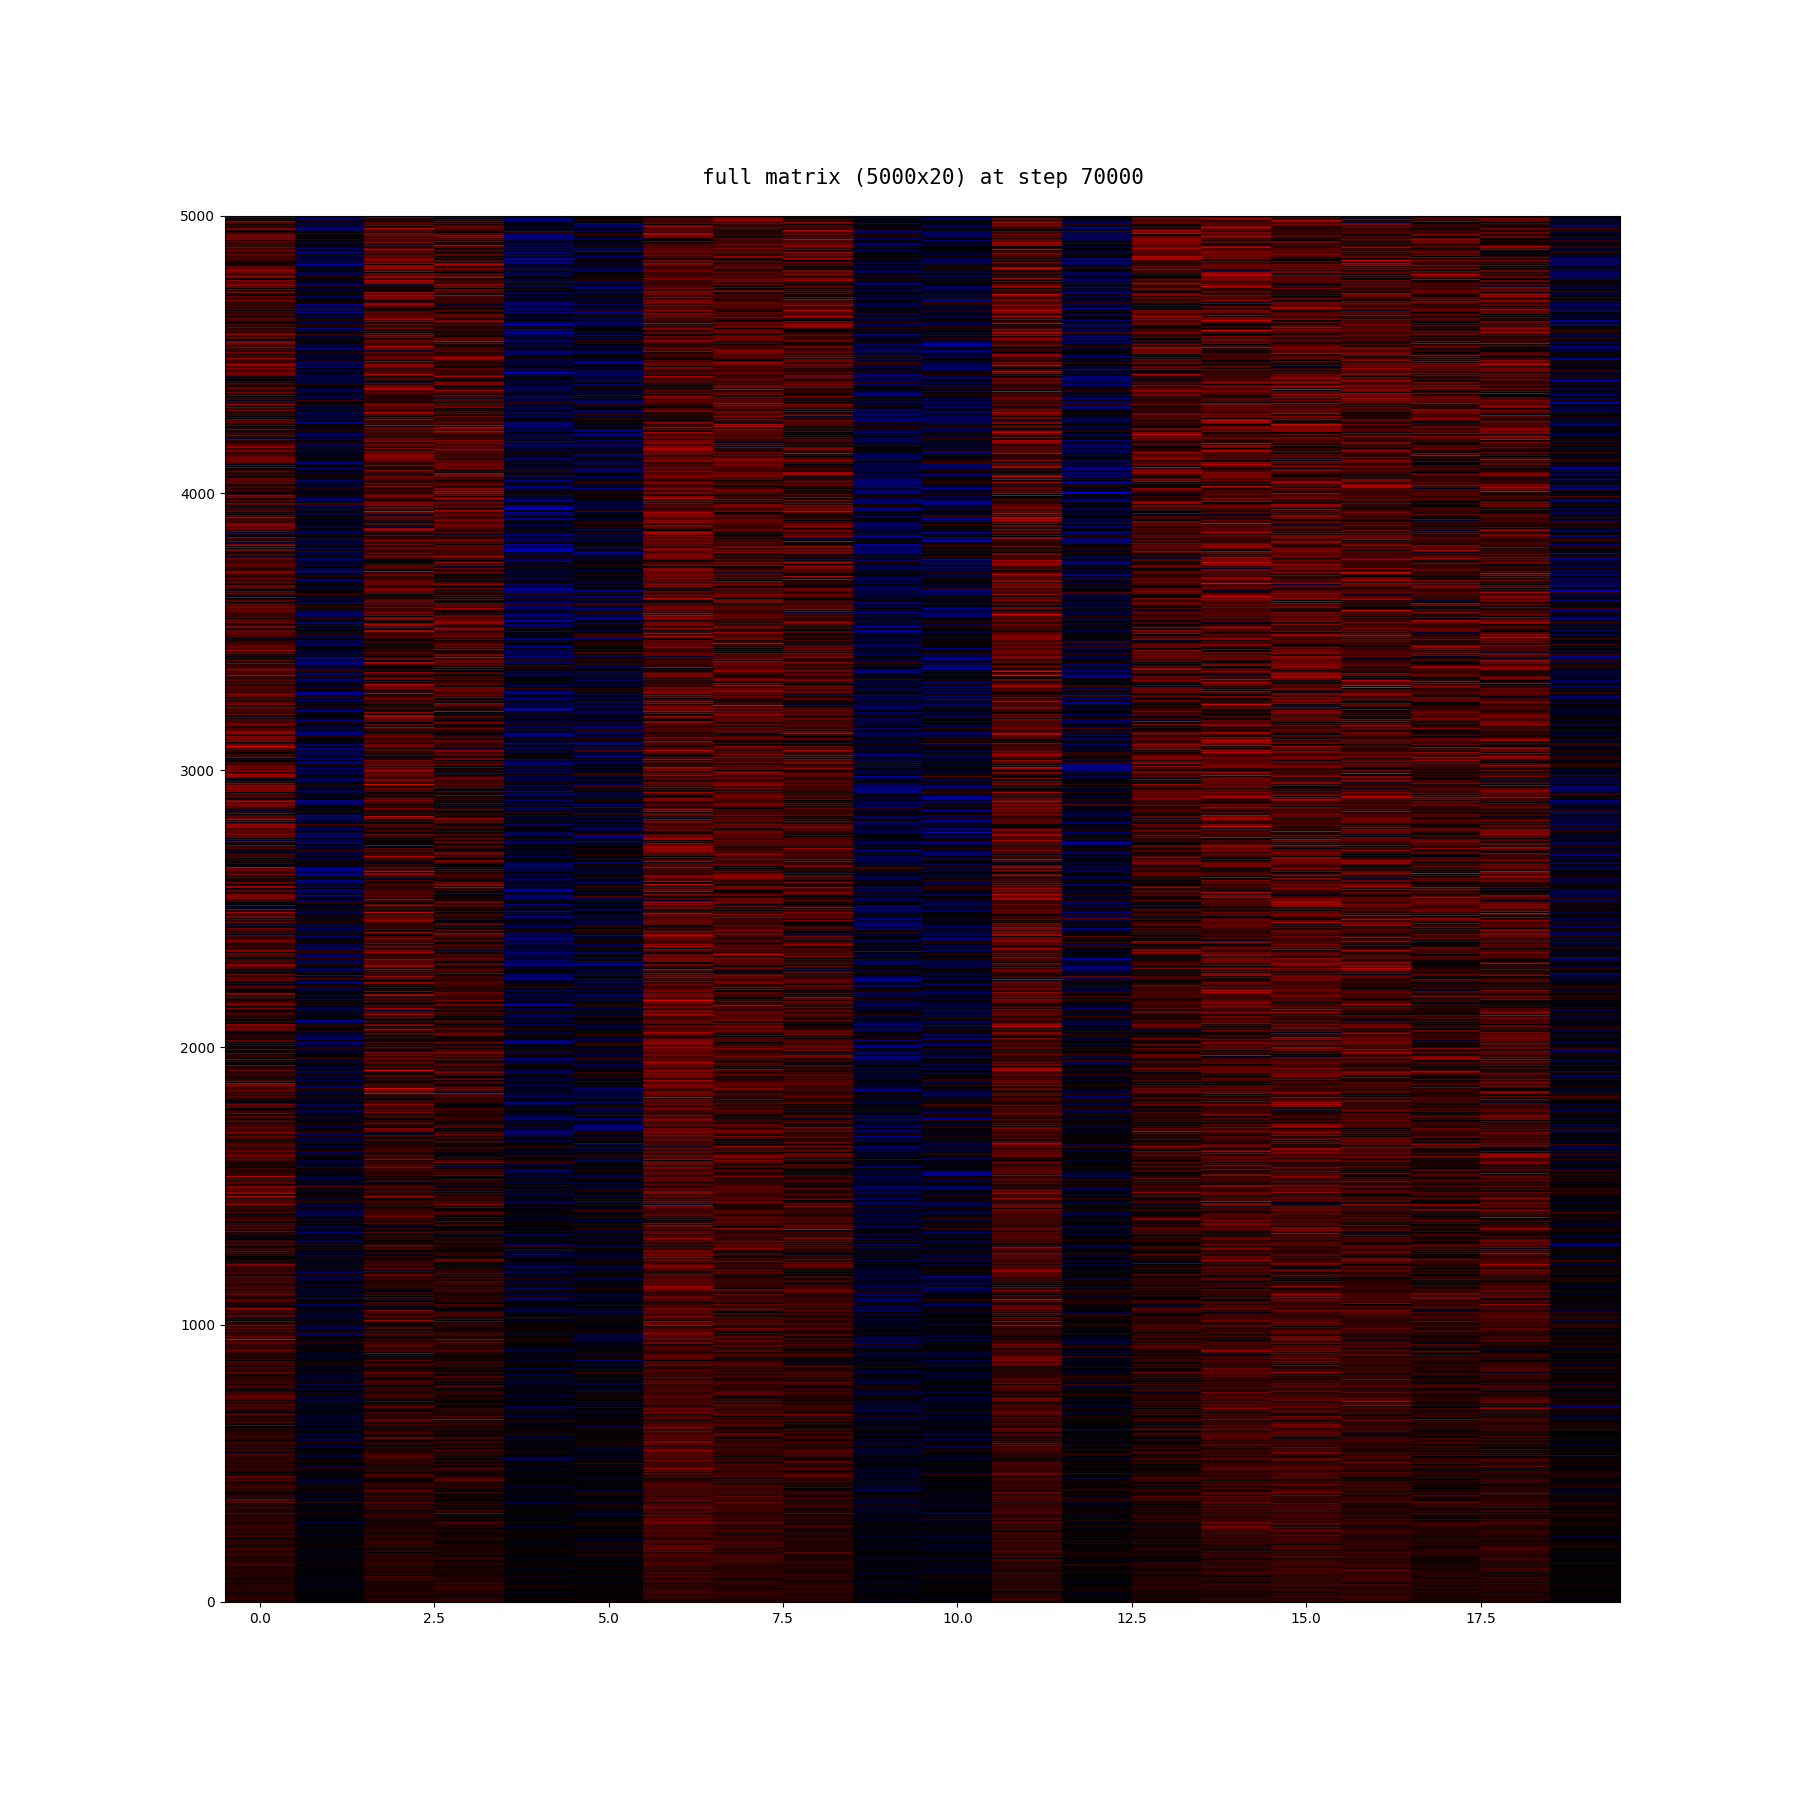 algoliterary_encounter/word2vec/plots/full-matrix/frankenstein-full-matrix-at-step_70000.png